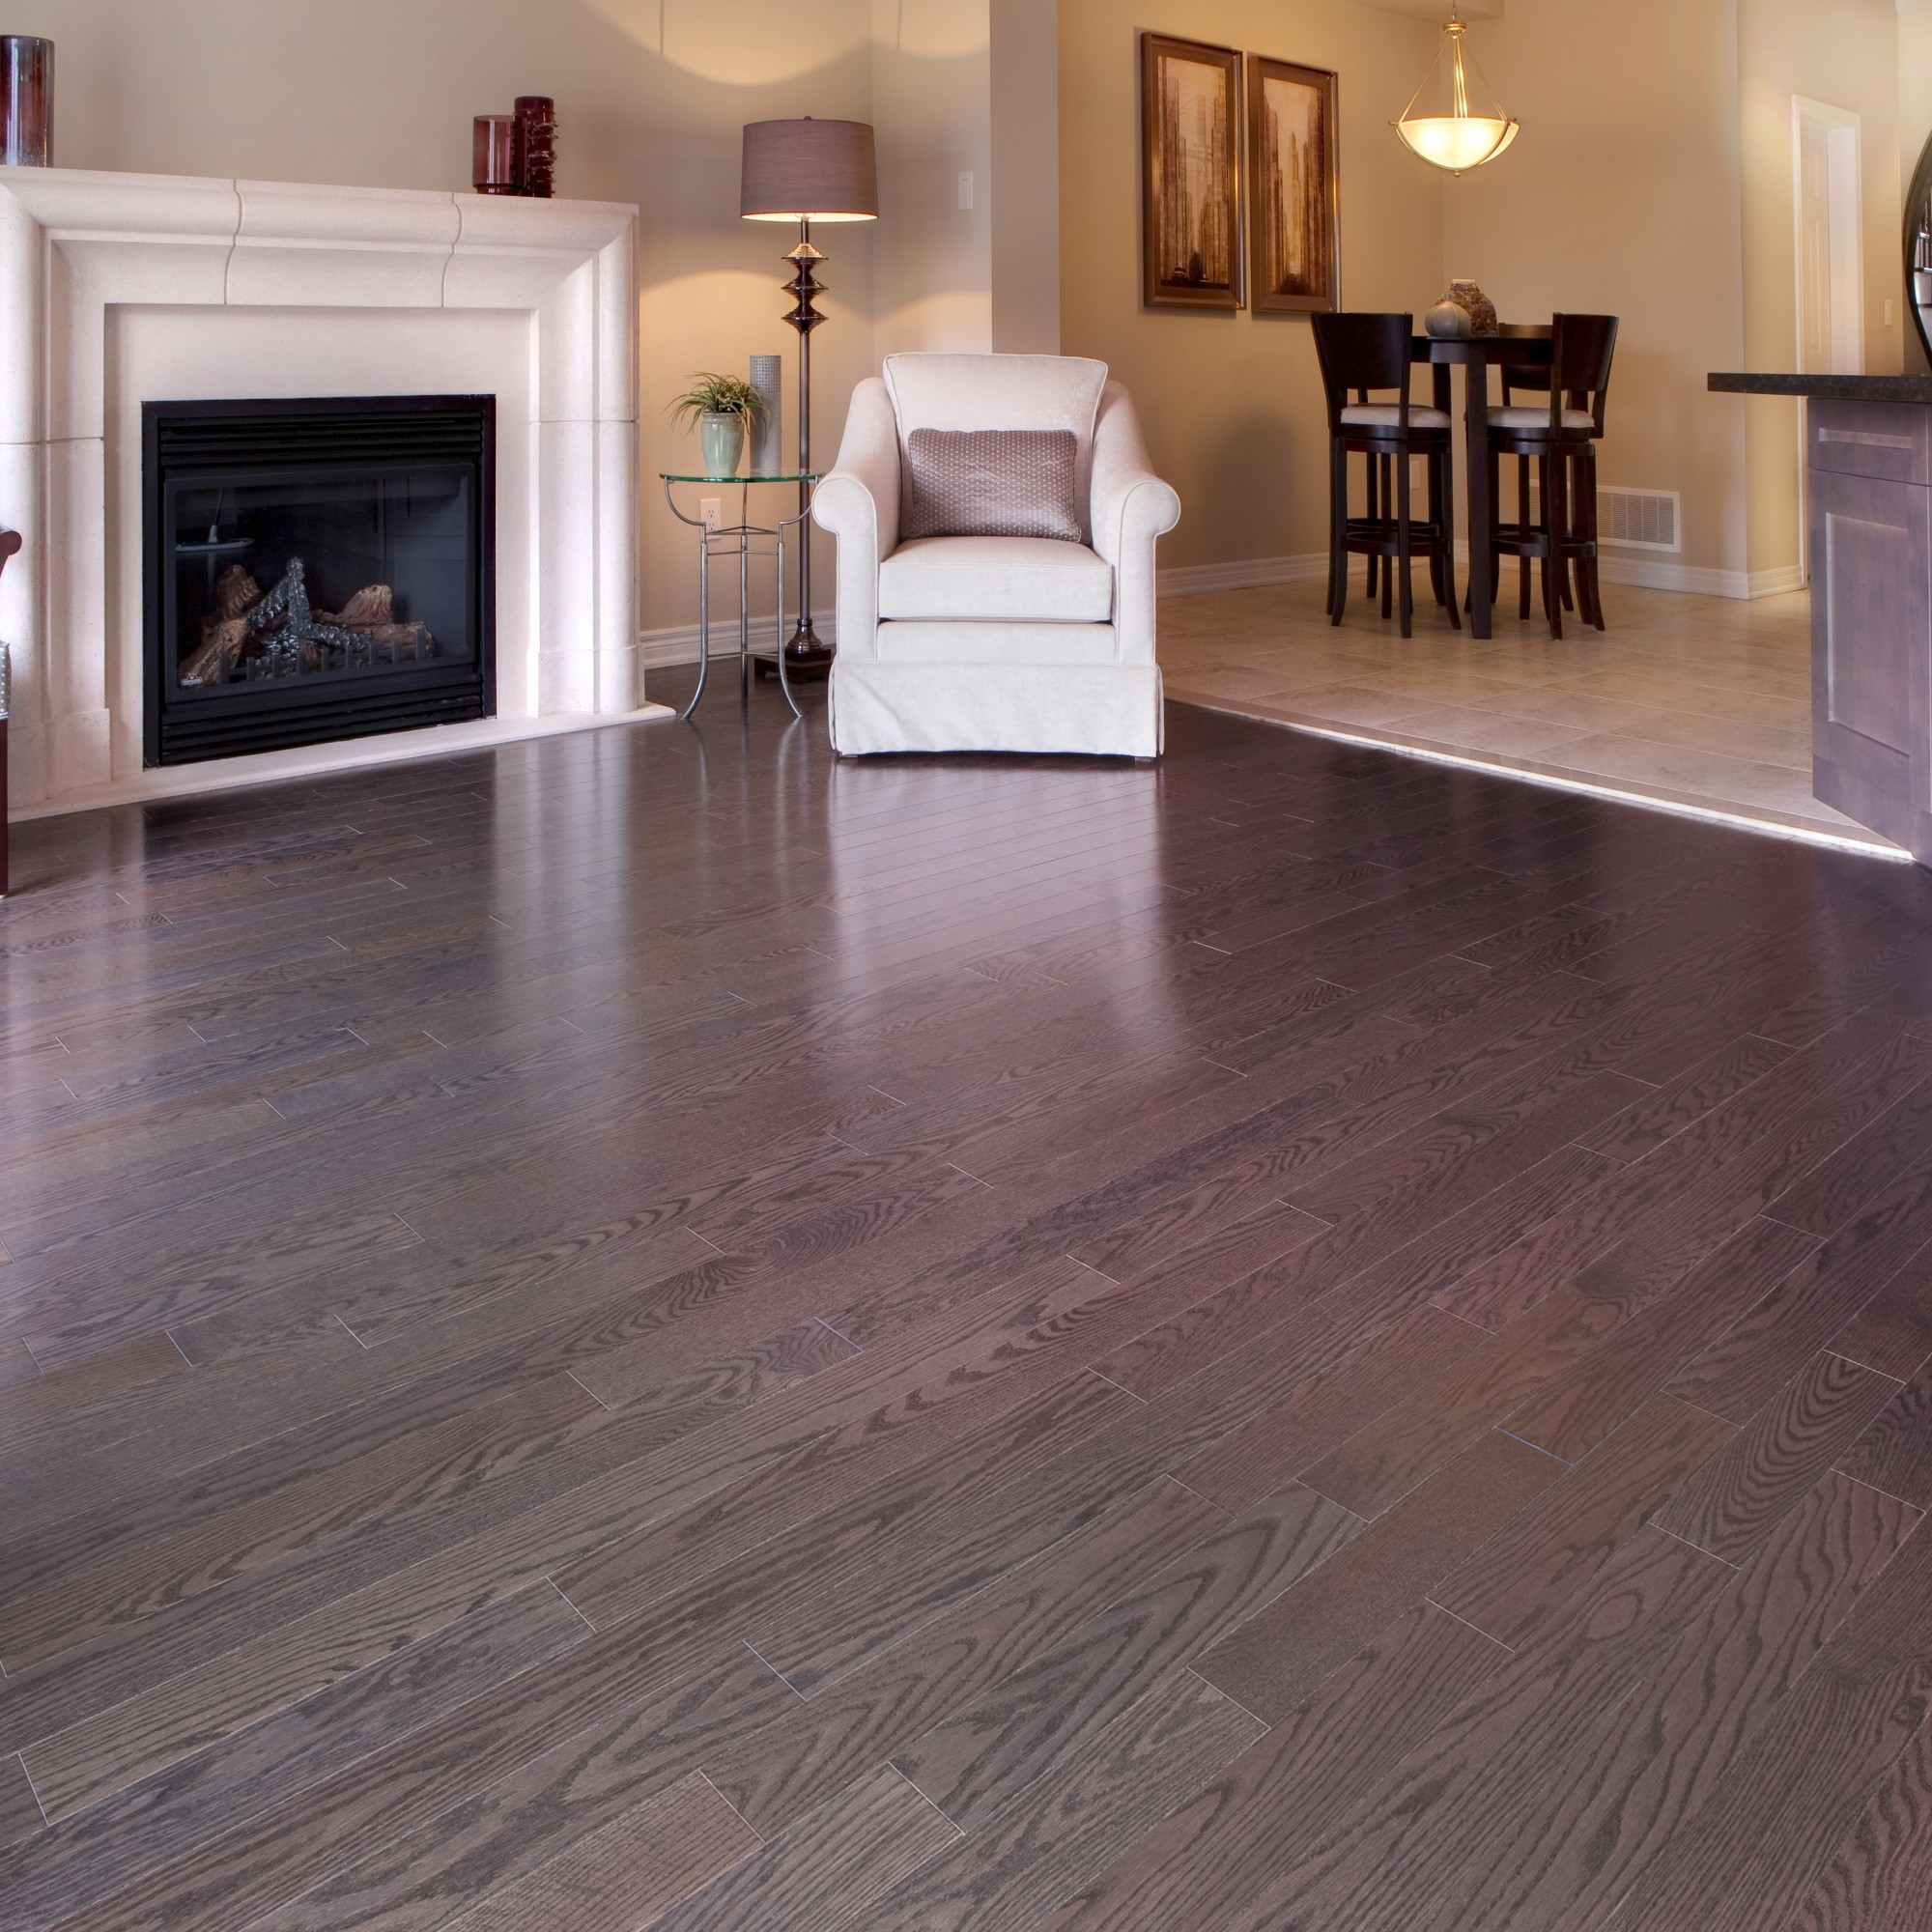 Smooth Red Oak Pewter Vintage Hardwood Flooring And